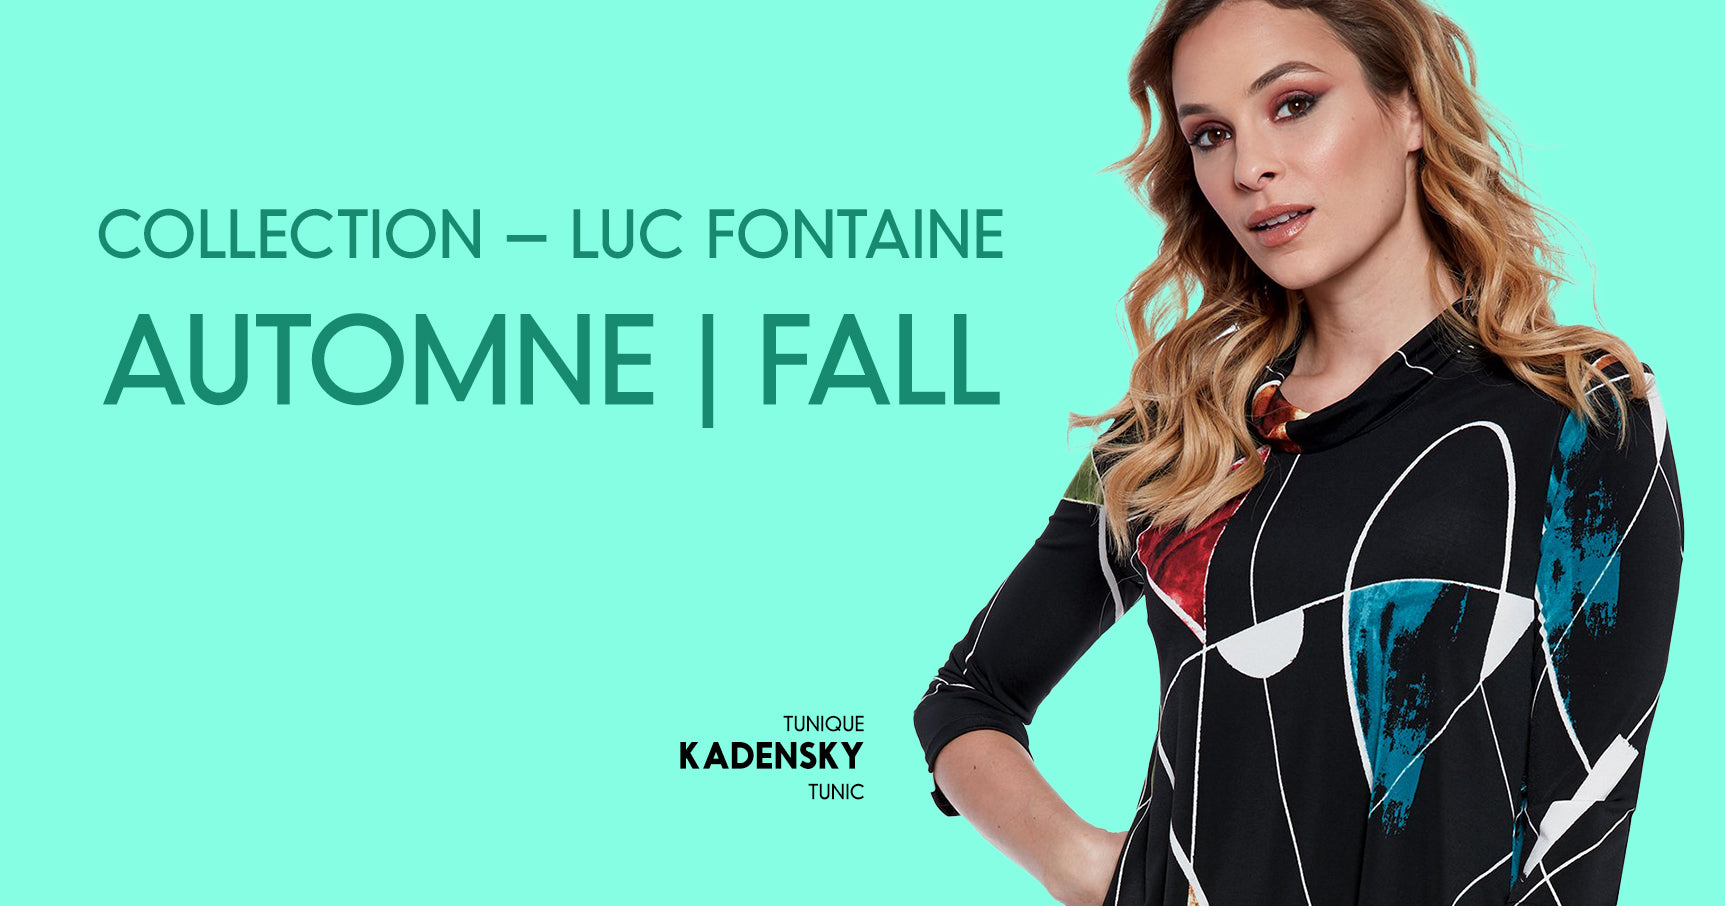 Collection Luc Fontaine -  Automne - Fall